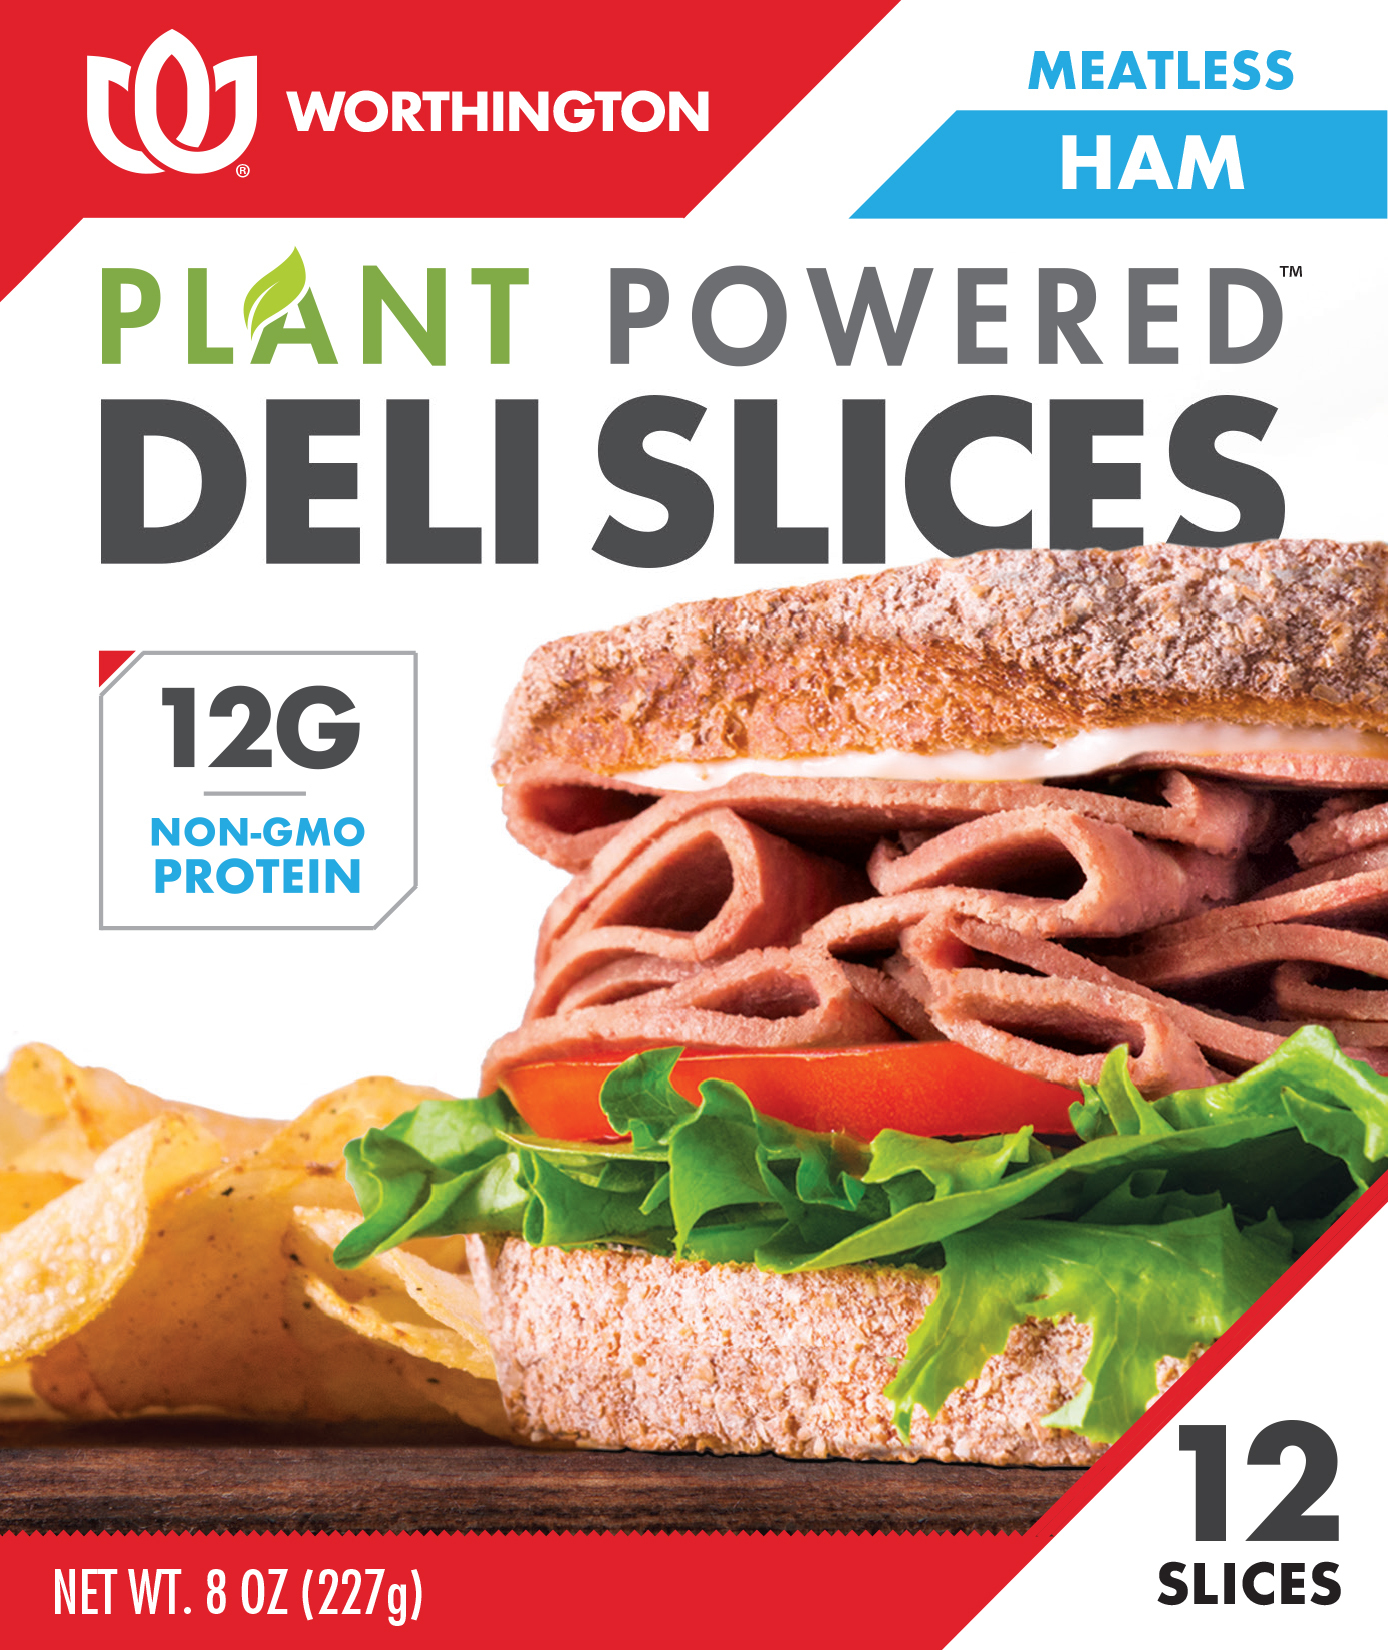 Deli slices meatless ham the natural products brands directory deli slices meatless ham forumfinder Choice Image